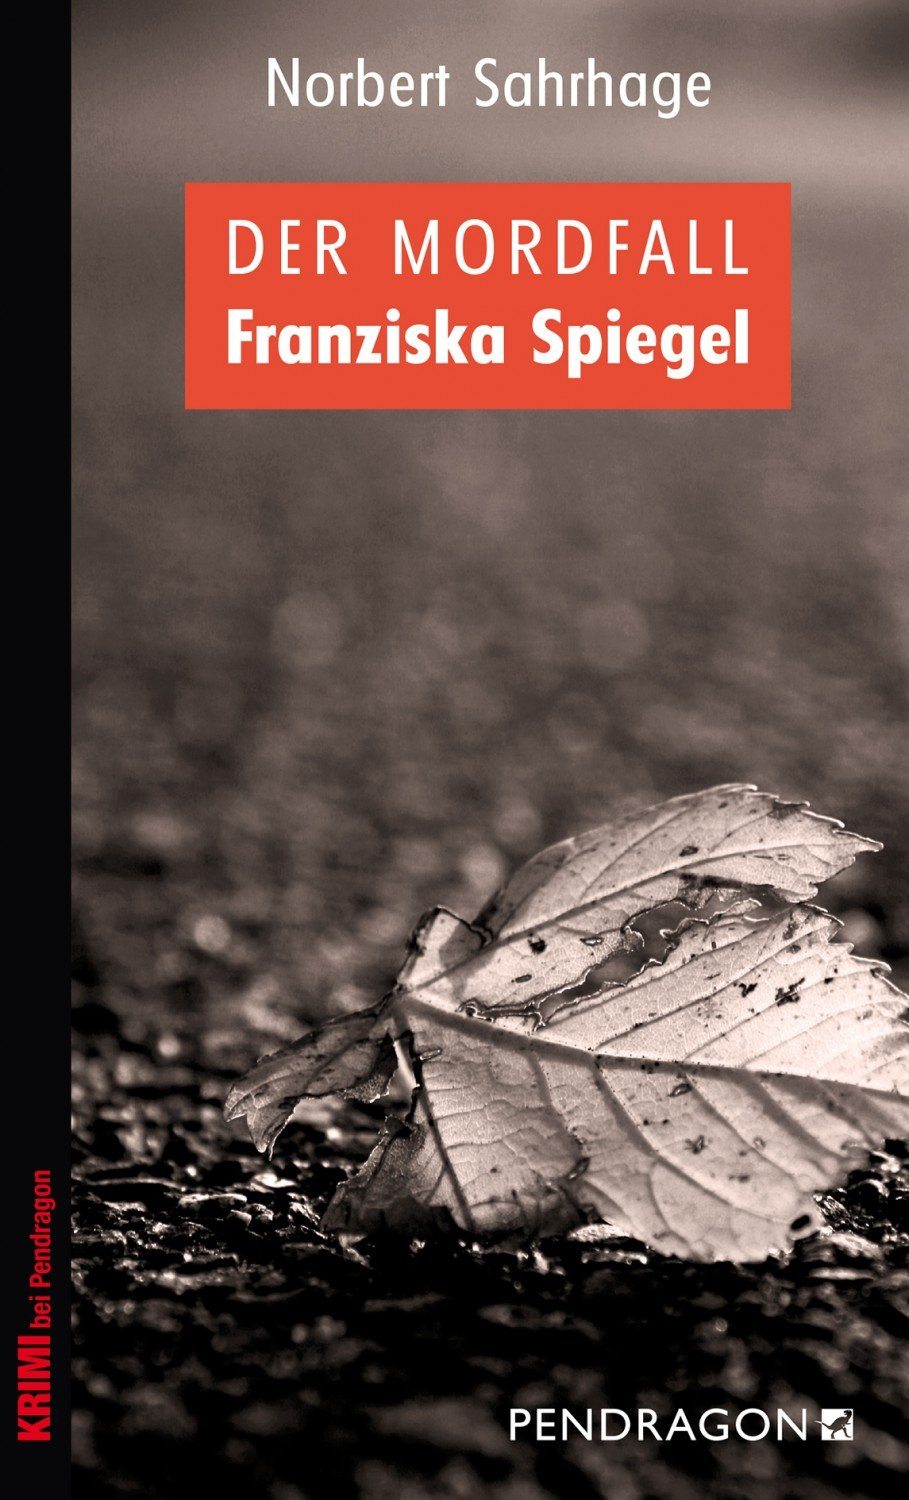 isbn 9783865325709 der mordfall franziska spiegel neu gebraucht kaufen. Black Bedroom Furniture Sets. Home Design Ideas